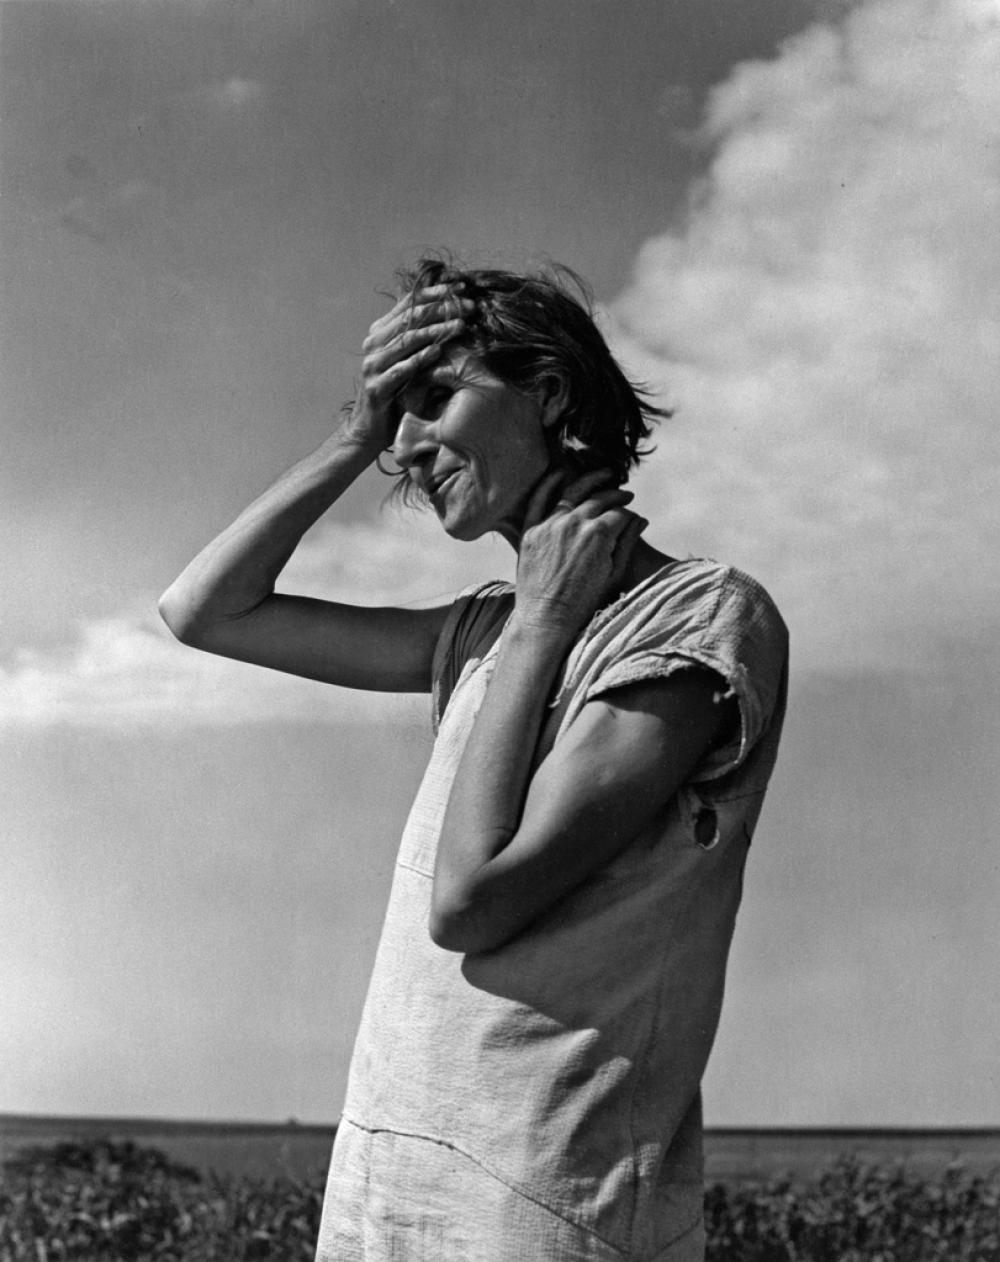 DOROTHEA LANGE (1895-1965) Woman of the High Plains, Texas Panhandle.